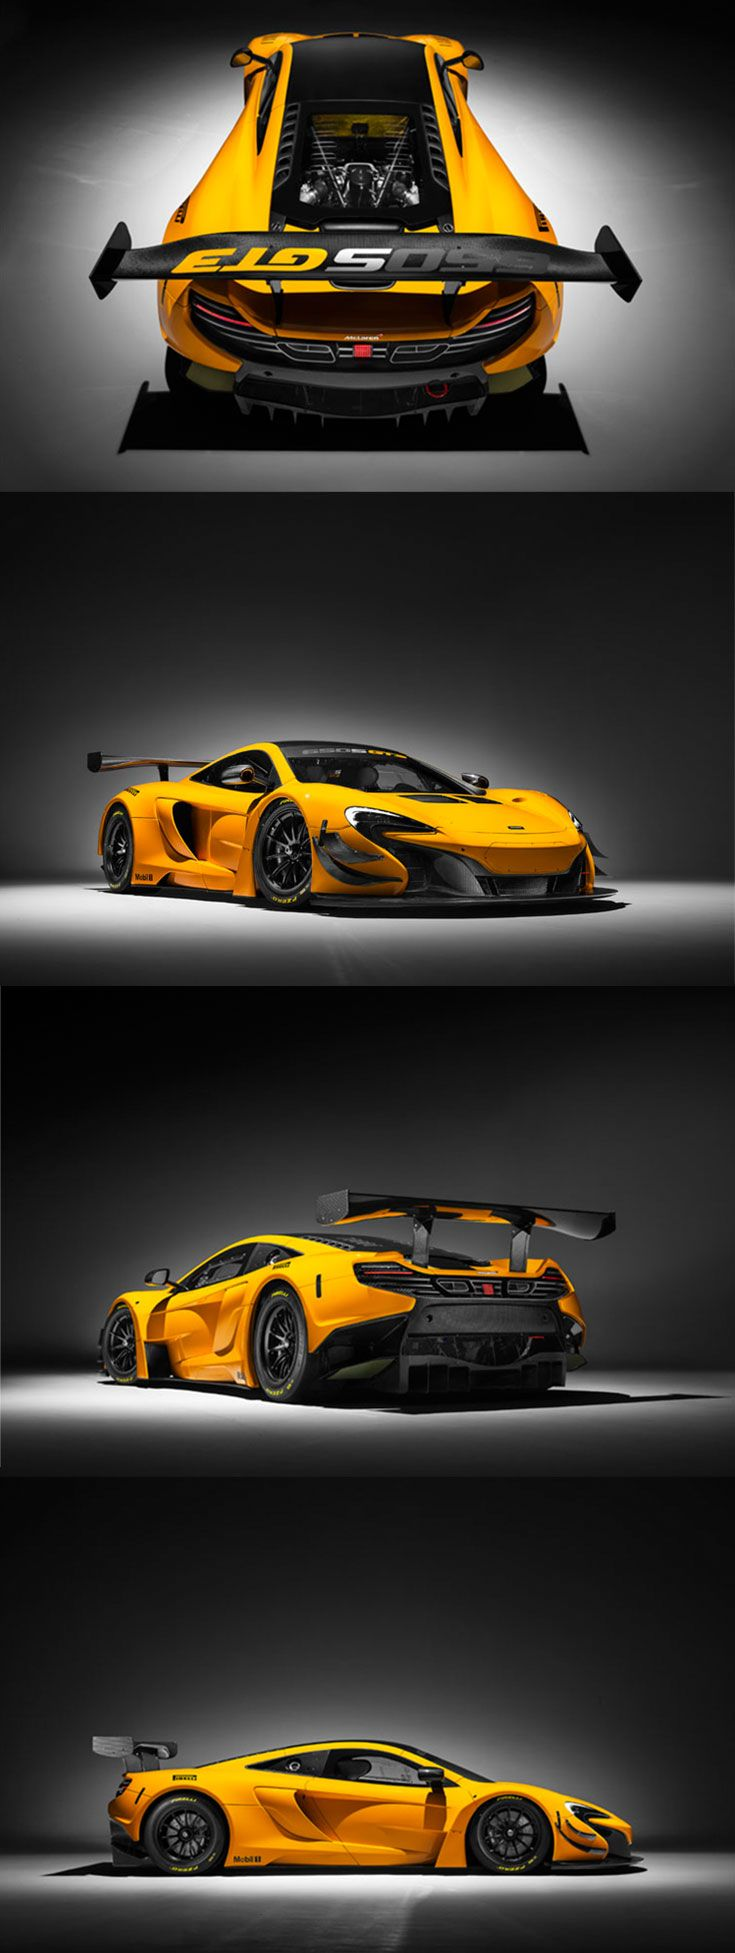 2016-factory-driver-plans-confirmed-as-mclaren-650s-gt3-heads-to-the-geneva-moto.jpg